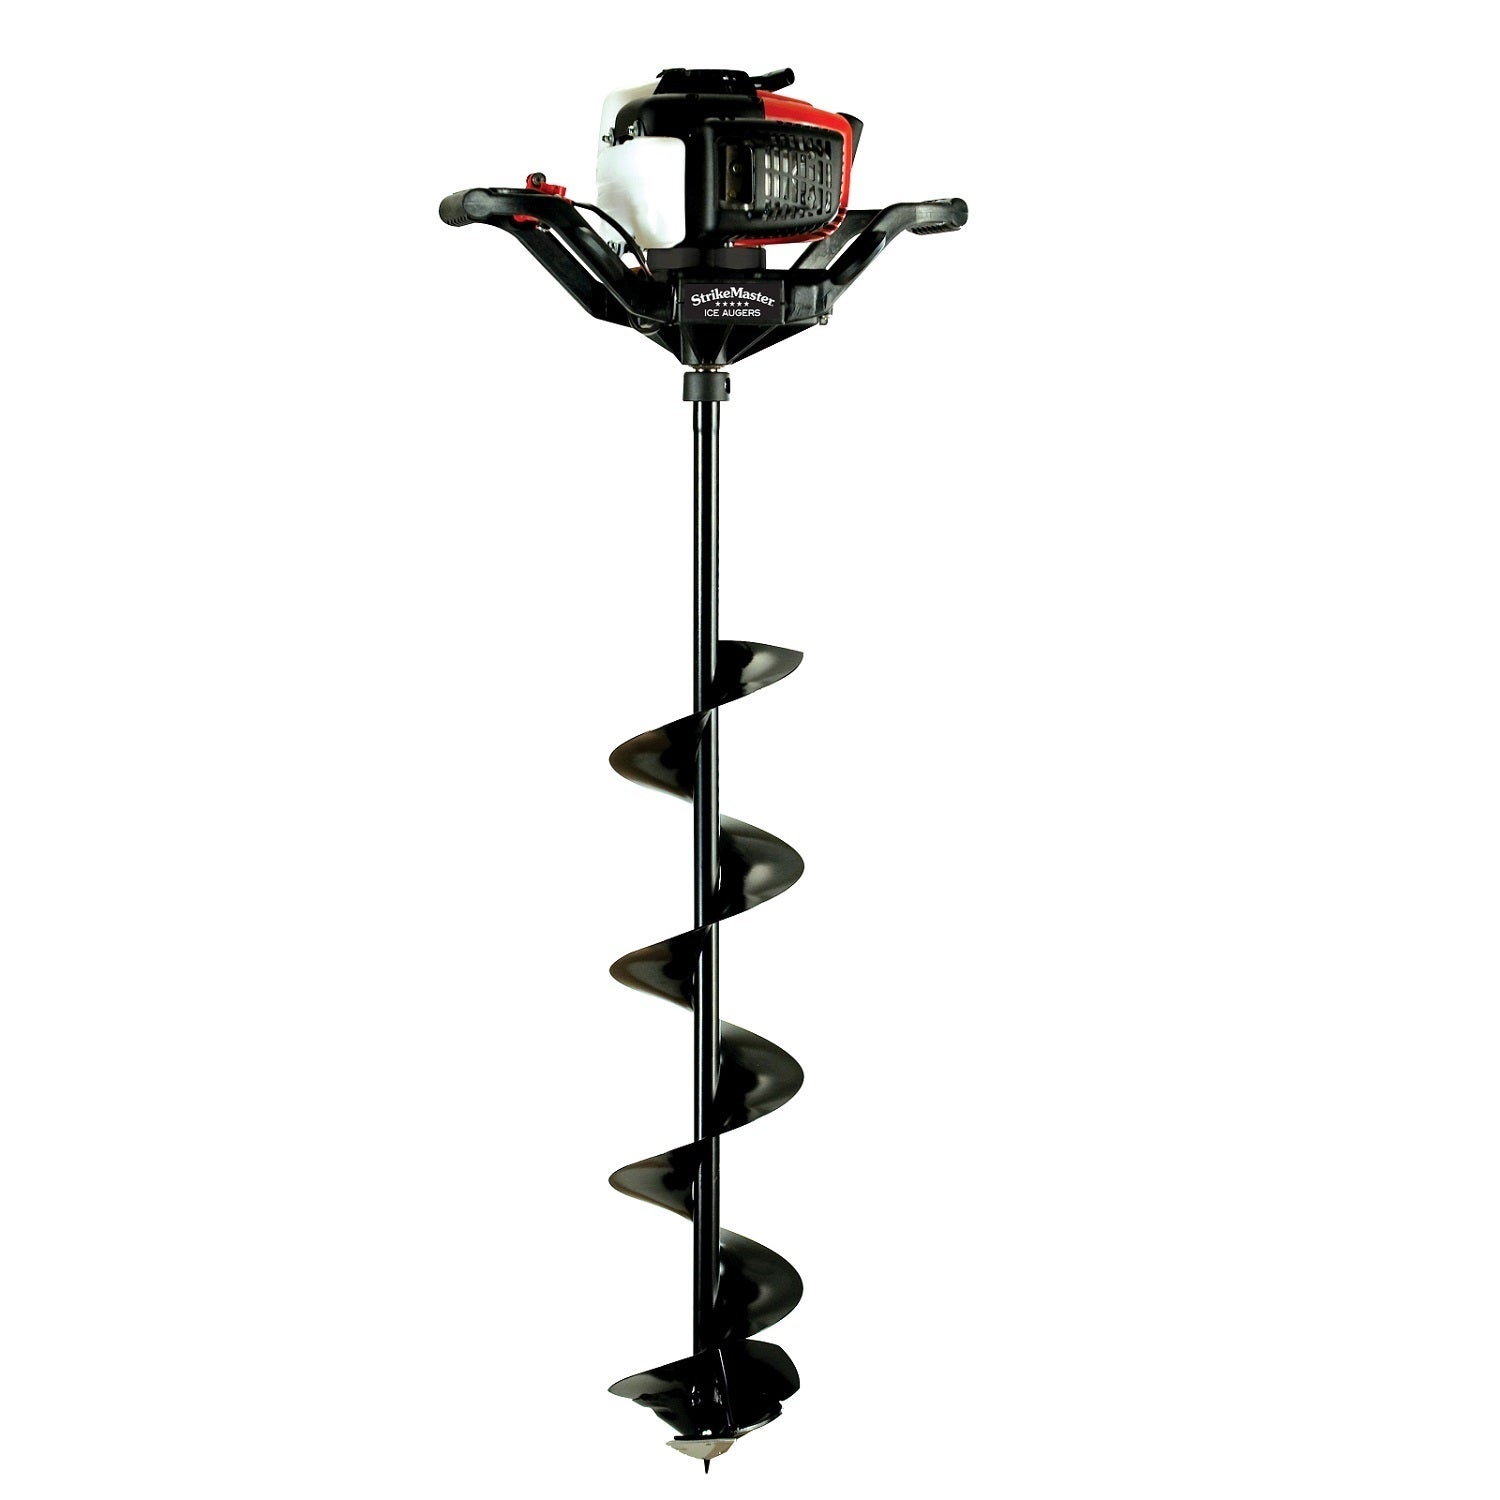 Strikemaster Lazer Mag Power Auger (Lazer Mag Power Auger...